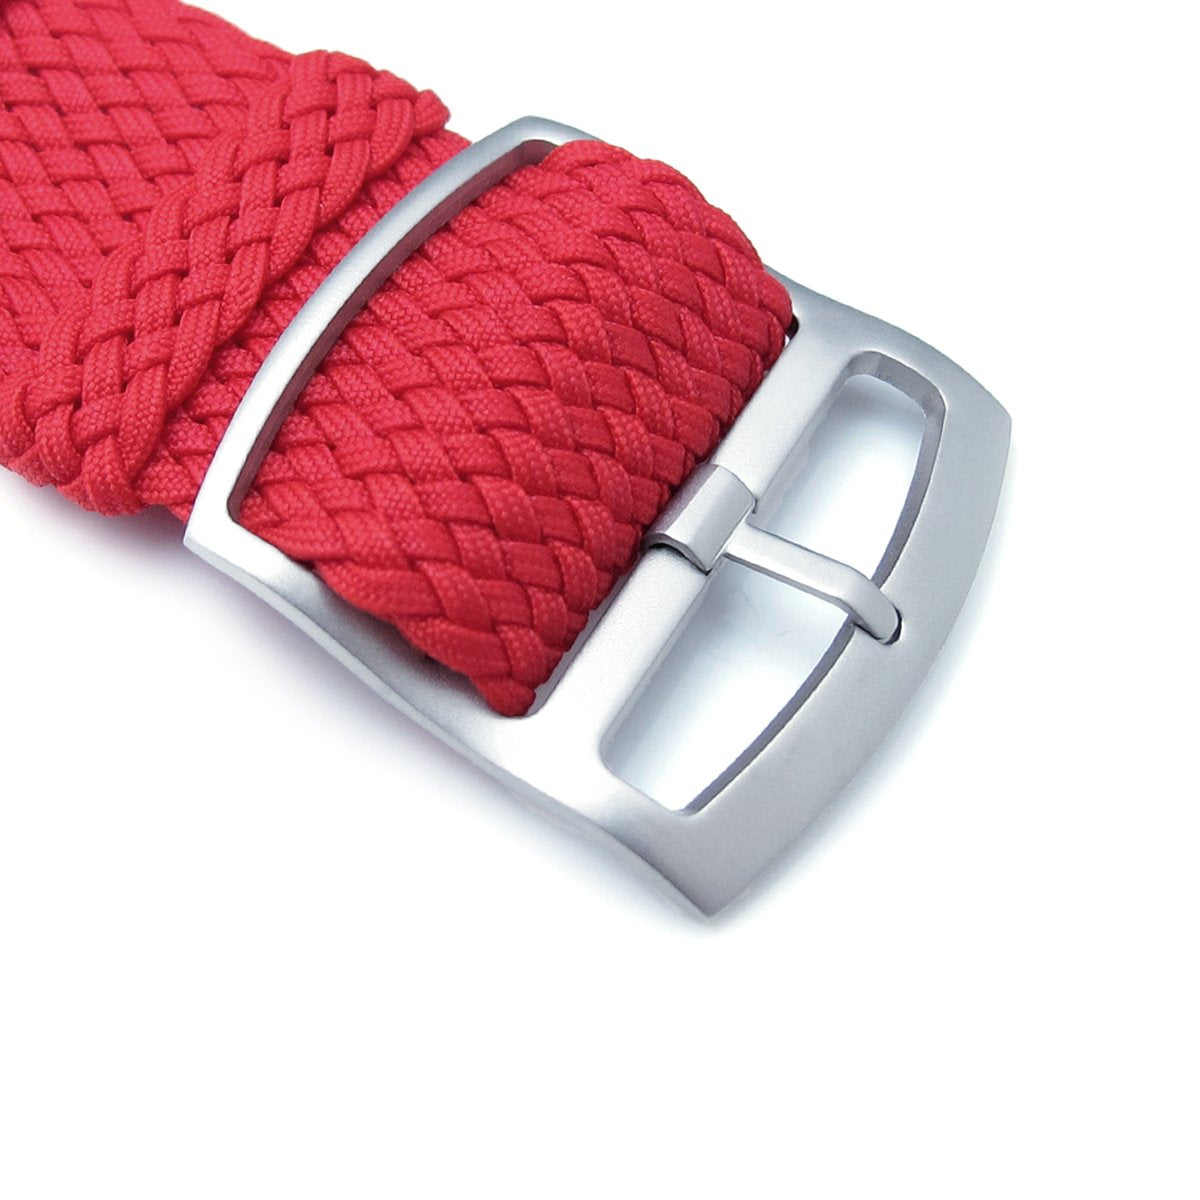 20 22 24mm MiLTAT Perlon Watch Strap Red Sandblasted Ladder Lock Slider Buckle Strapcode Watch Bands